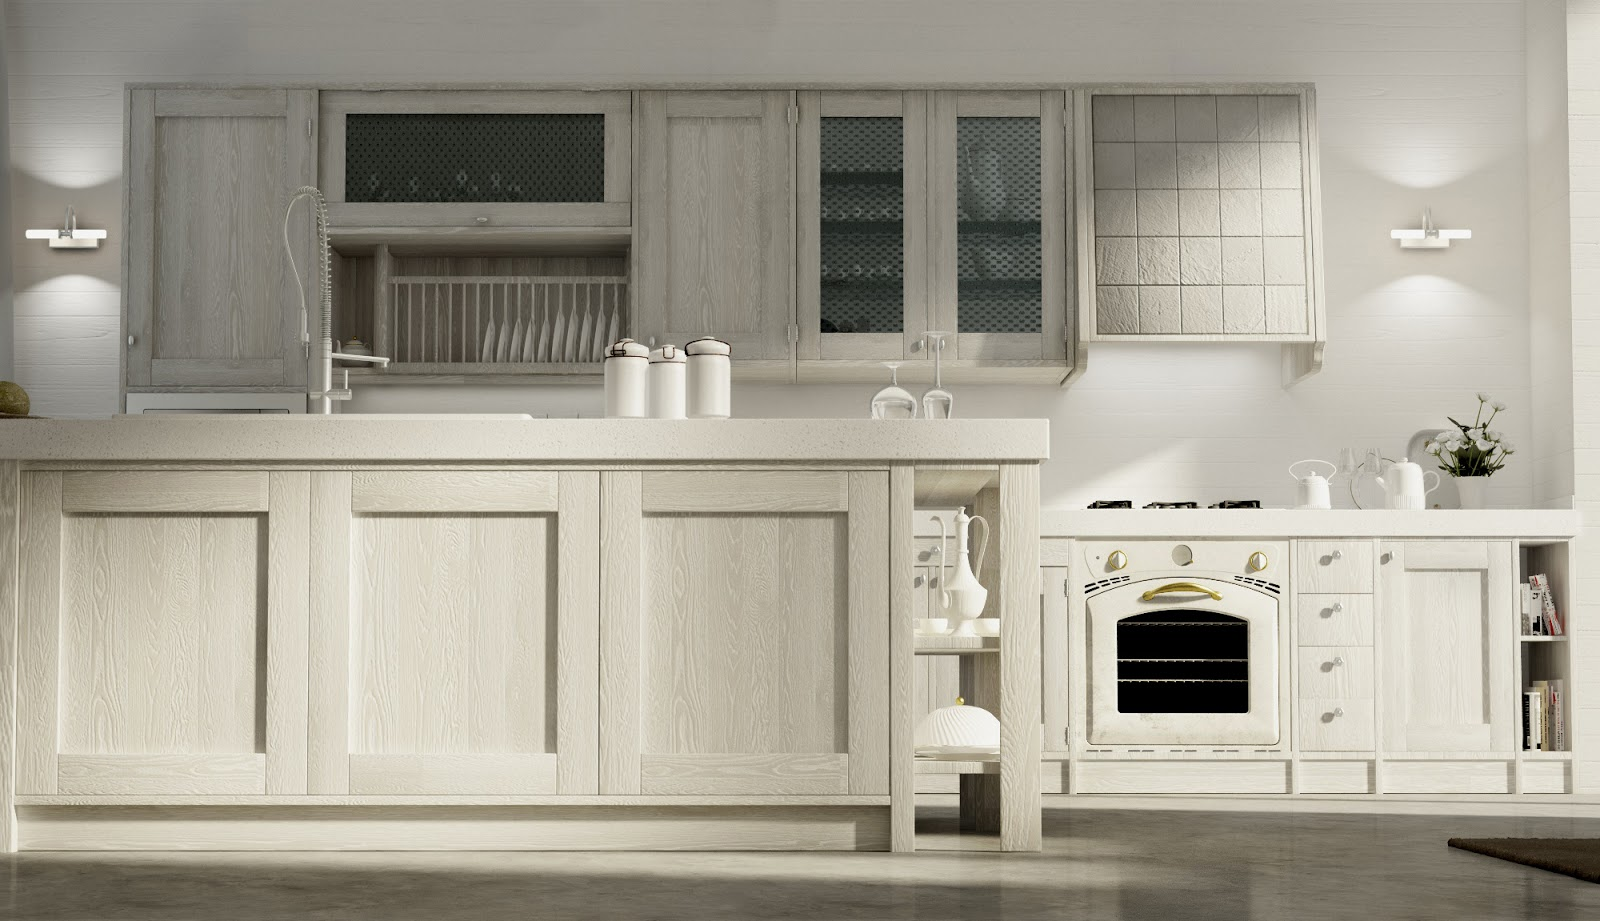 Cucina country chic - Cucina country chic ...